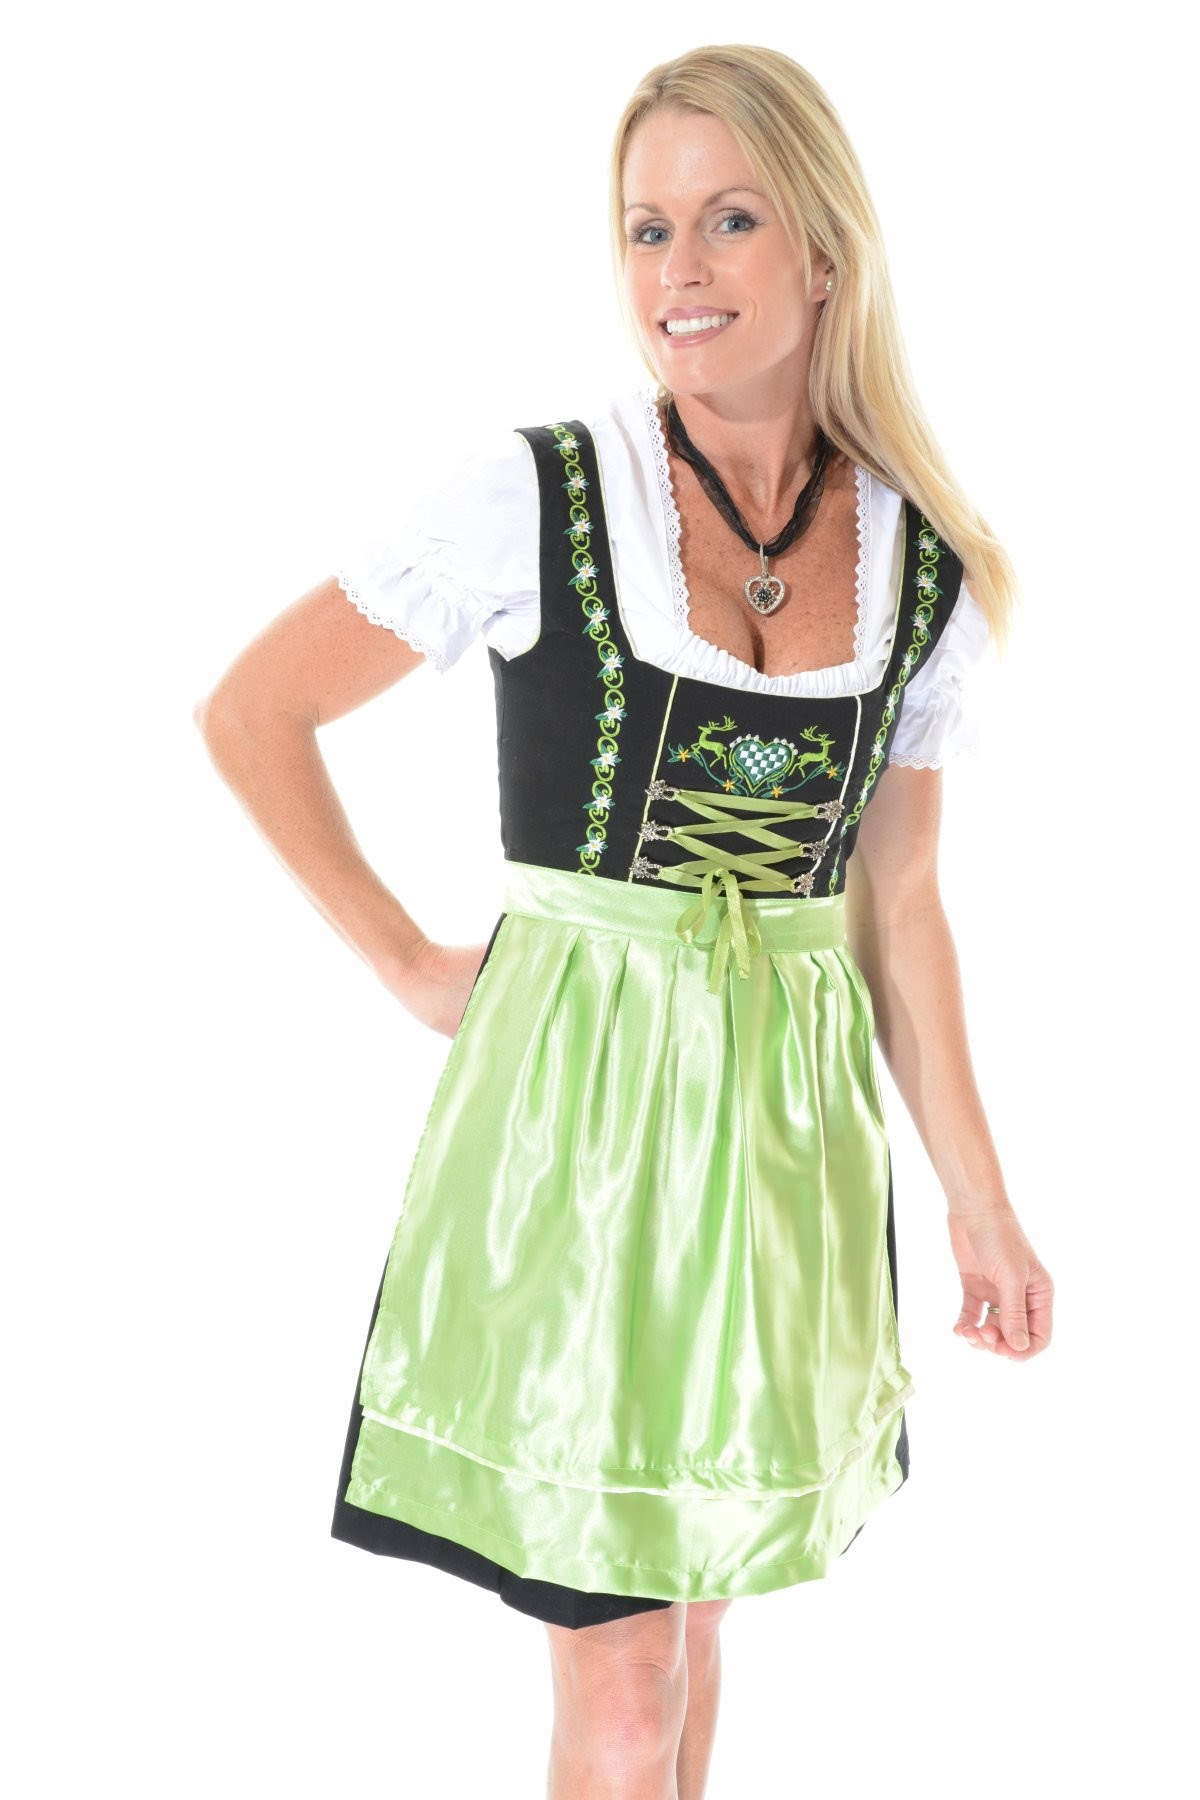 dirndl  dirndls  dirndl dress  drindl  dirndle